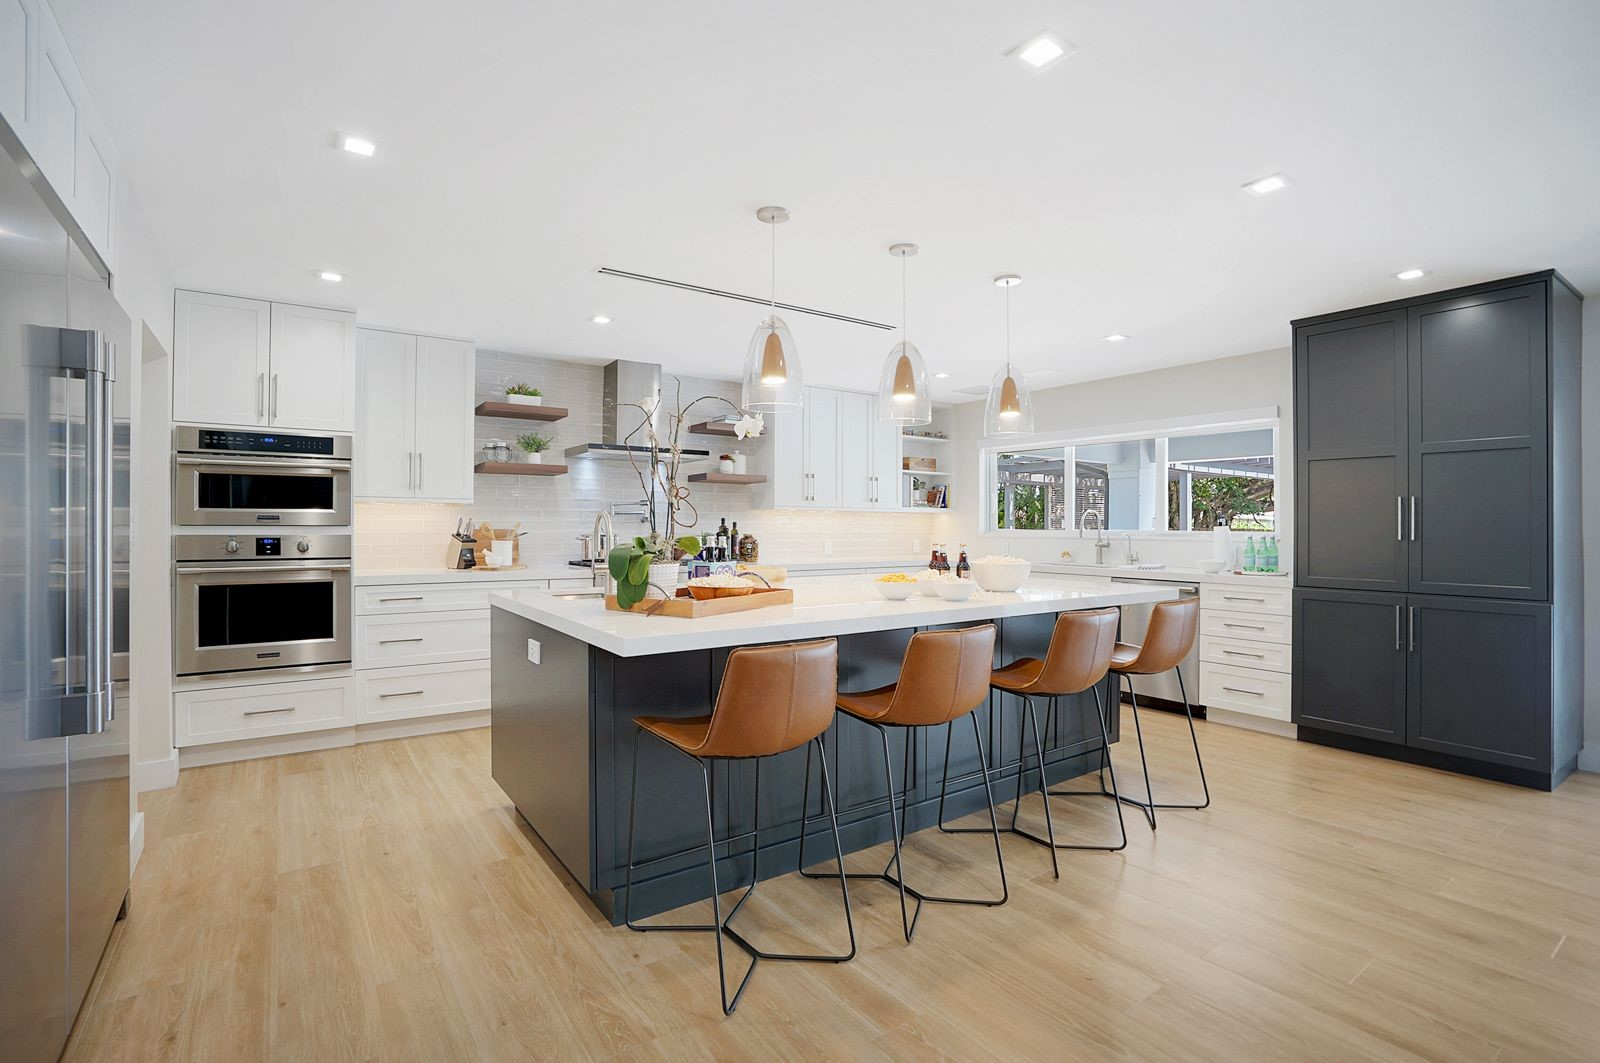 Kitchen Remodeling in Pinecrest, Palmetto Bay, Coral Gables, Ocean Reef, Key Largo, and Miami